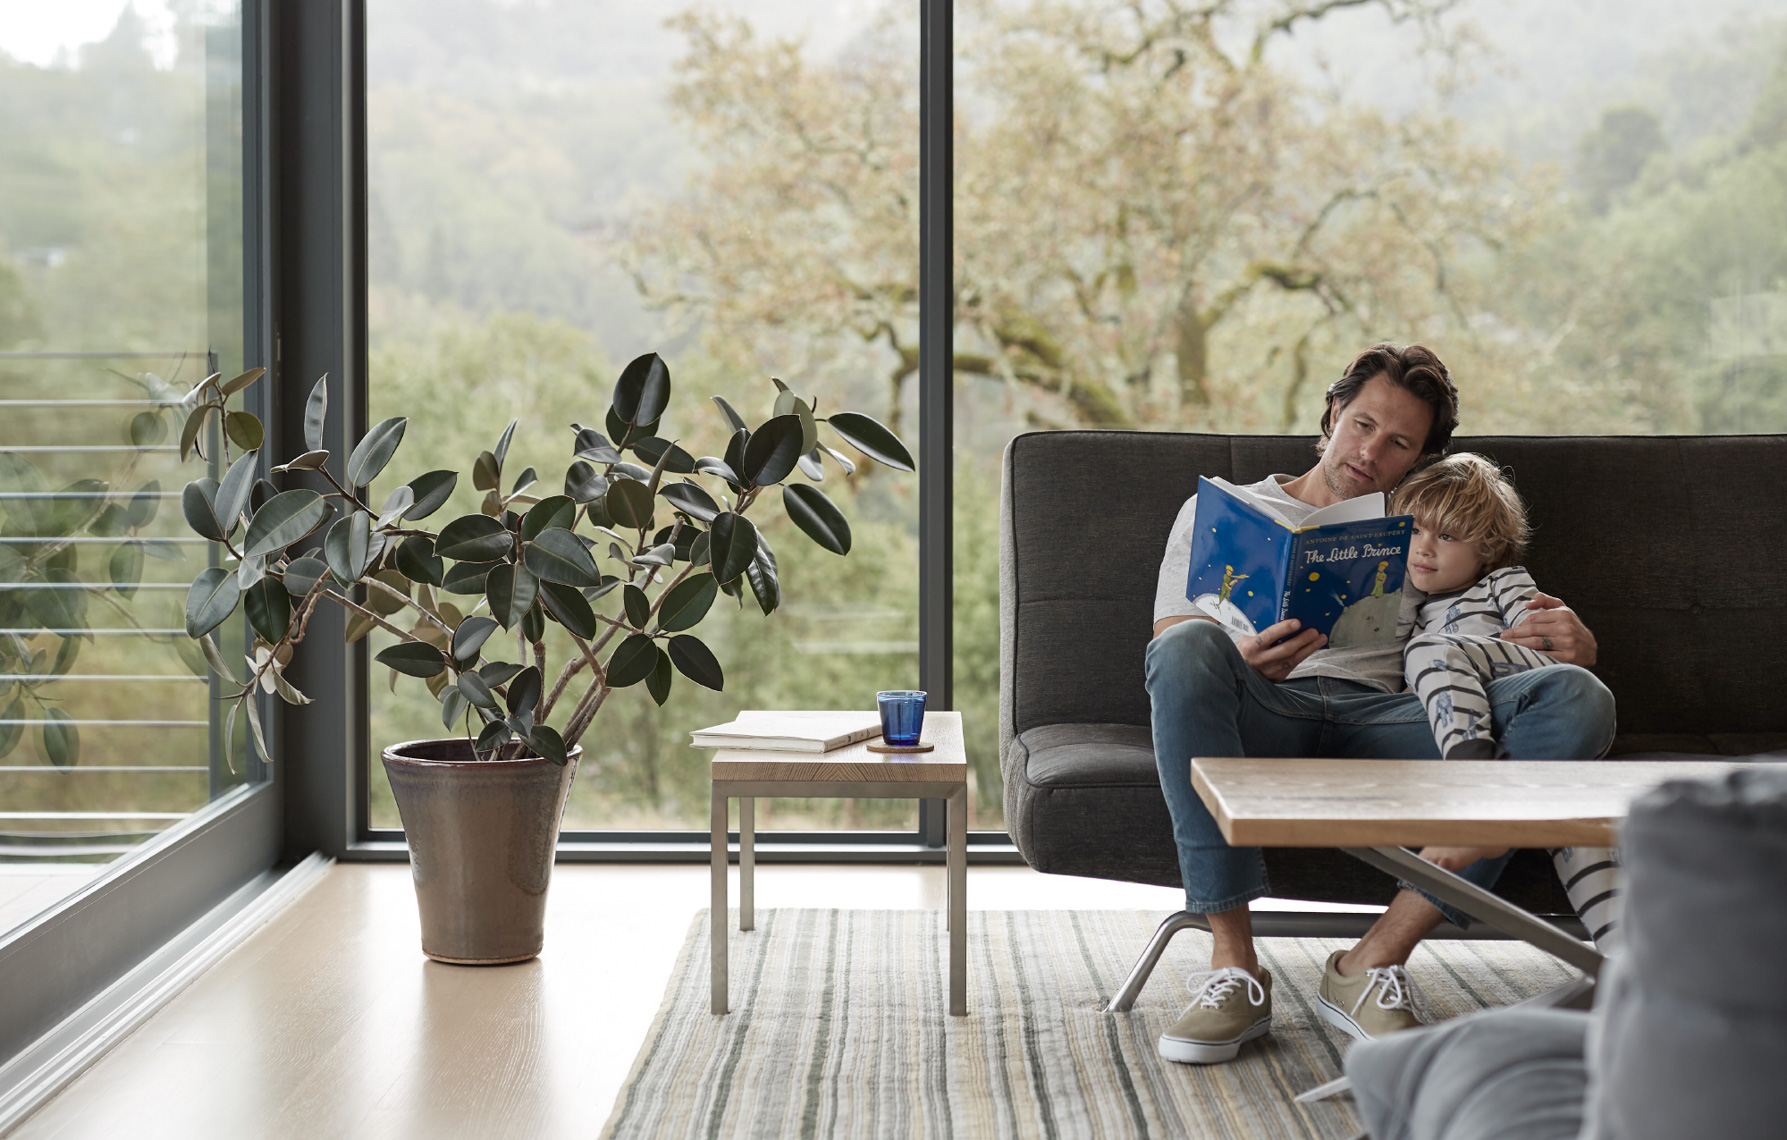 father reading The Little Prince to his child snuggling on sleek grey couch in living room  San Francisco lifestyle photographer